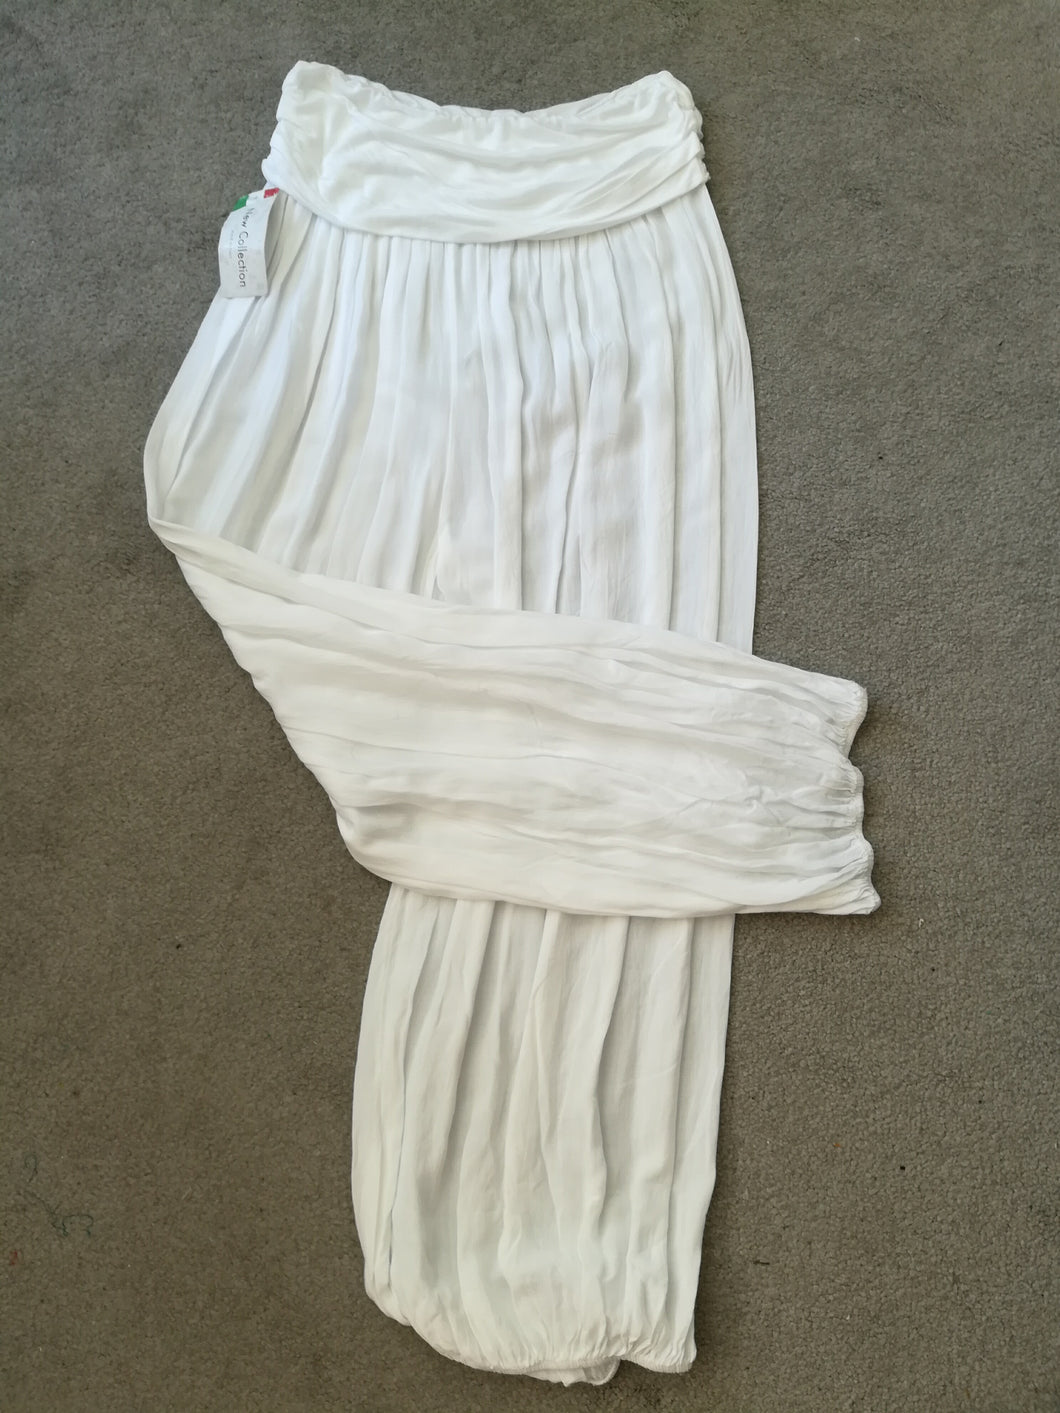 White Harem Pants - one size 10/18 £15